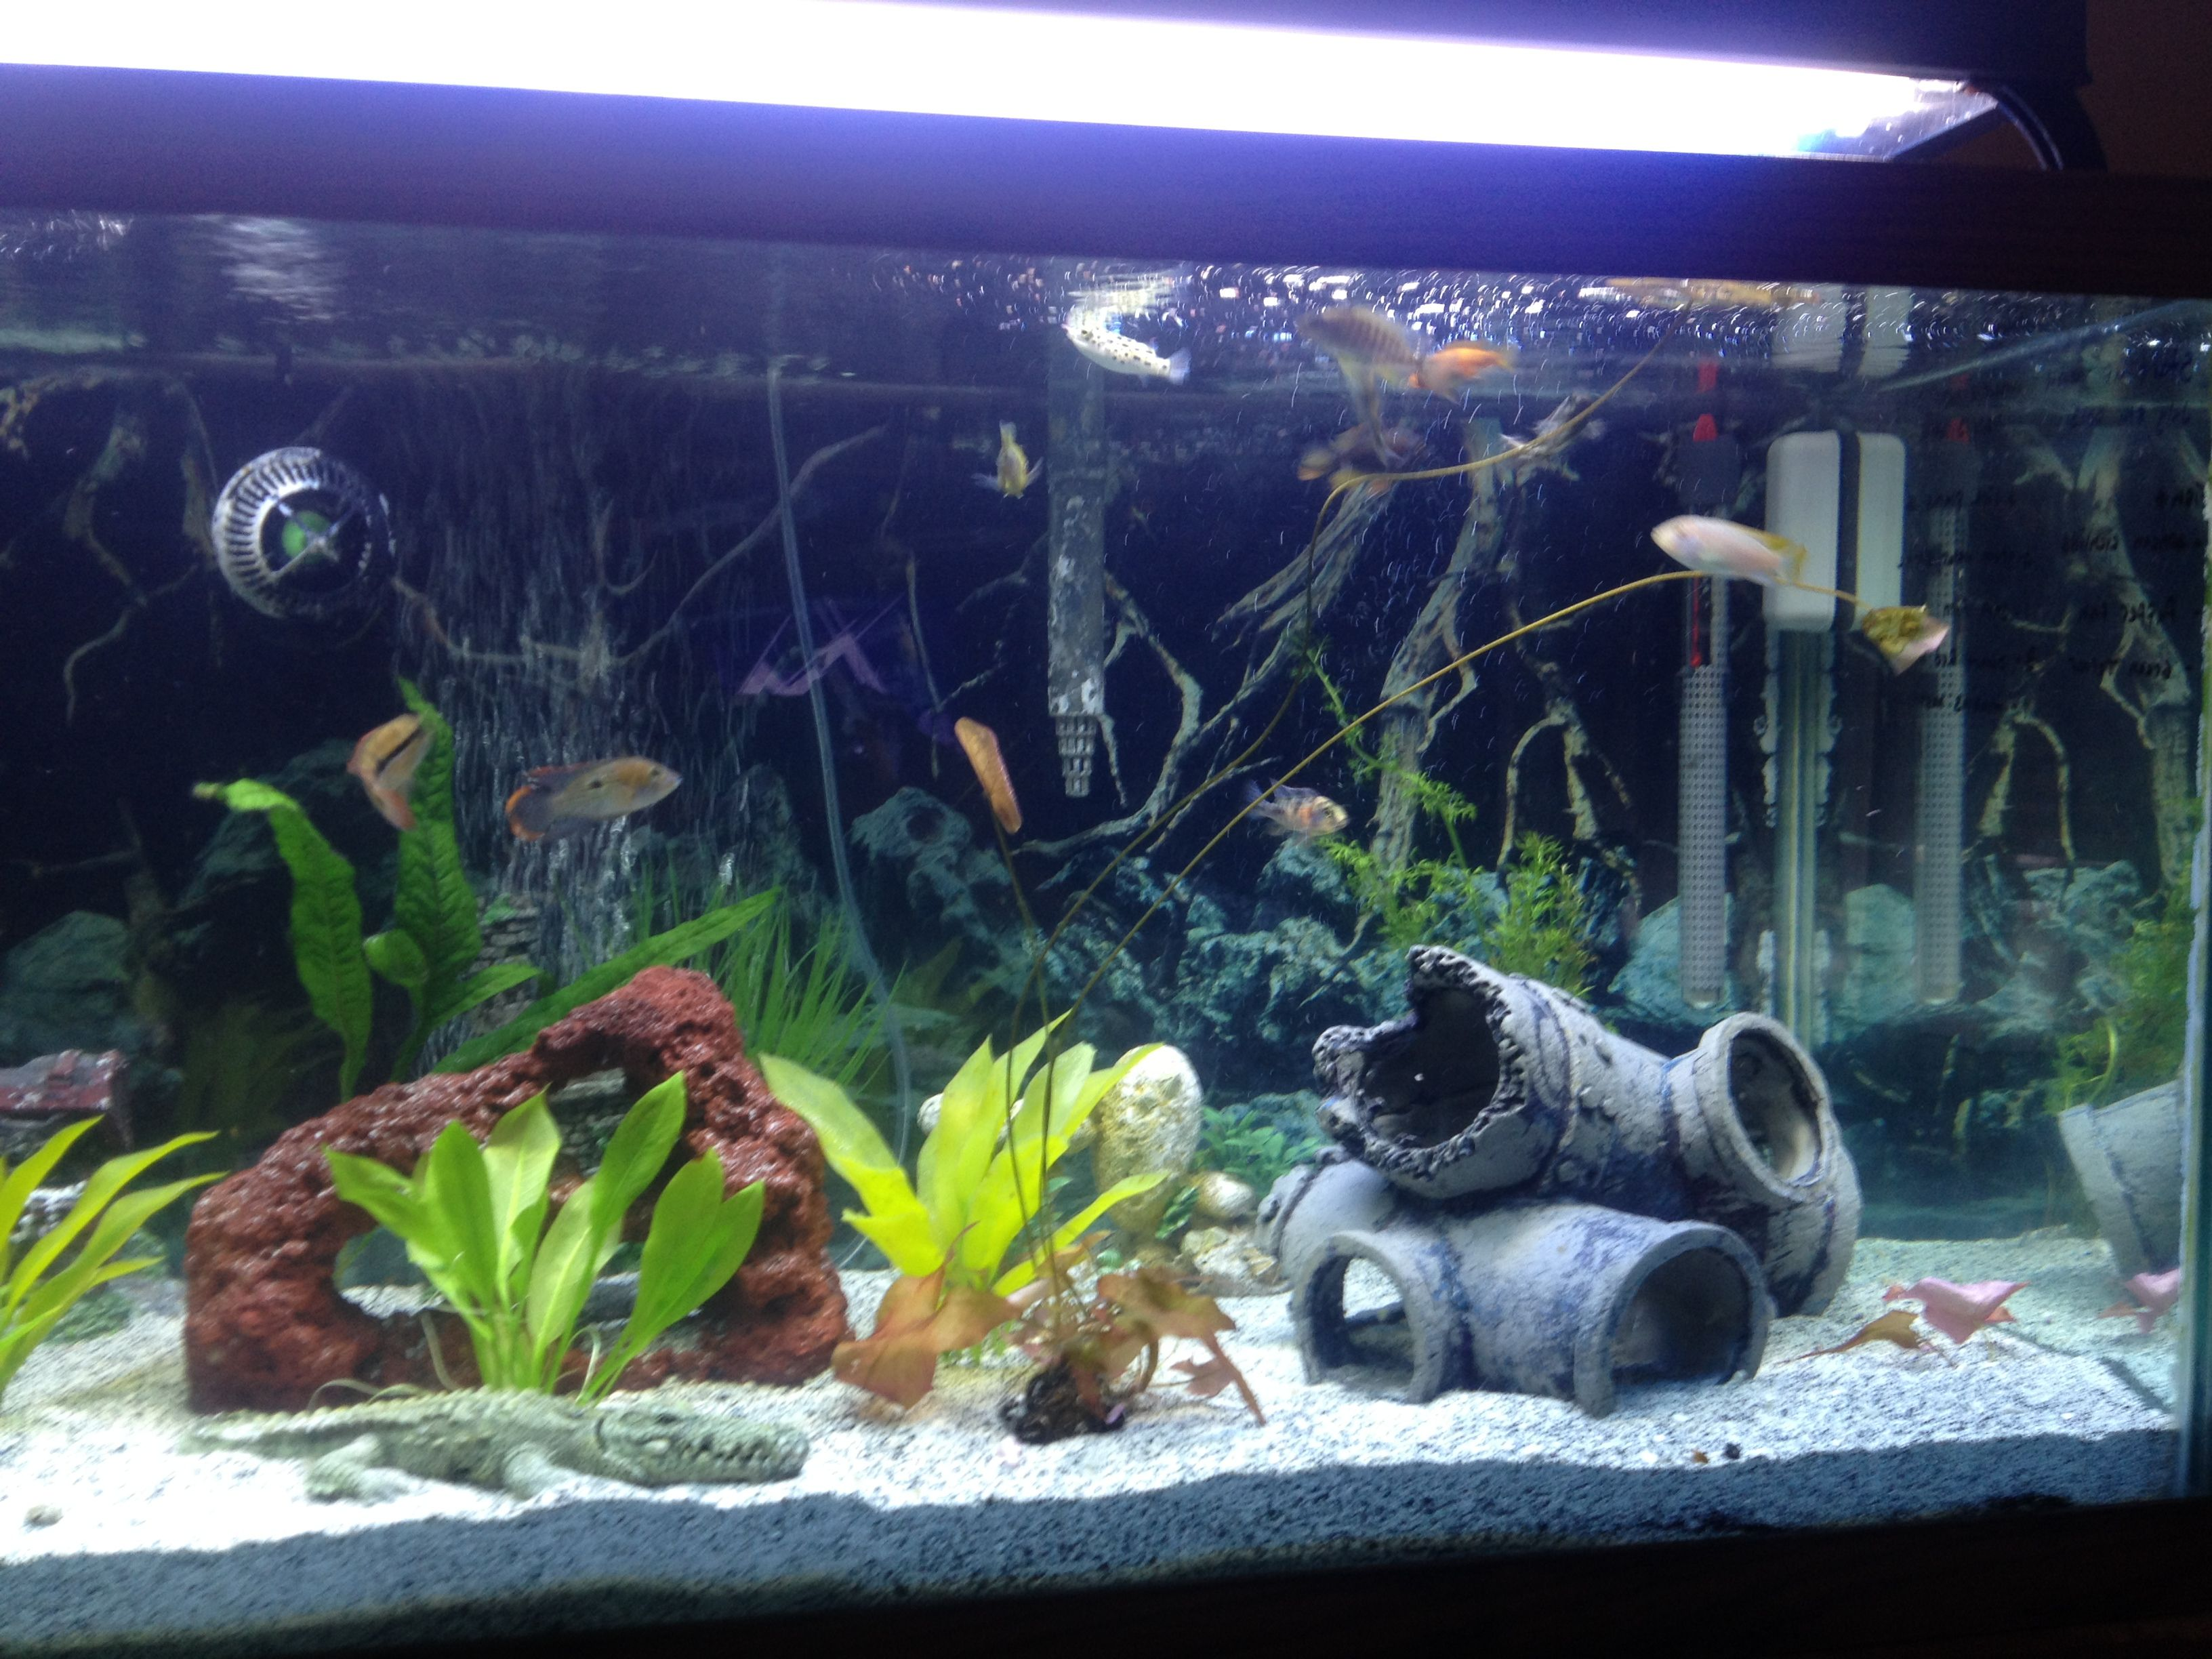 Freshwater fish tank live plants - This Is A 75 Gallon African Cichlid Tank With Live Plants Ince To Puffer Fish